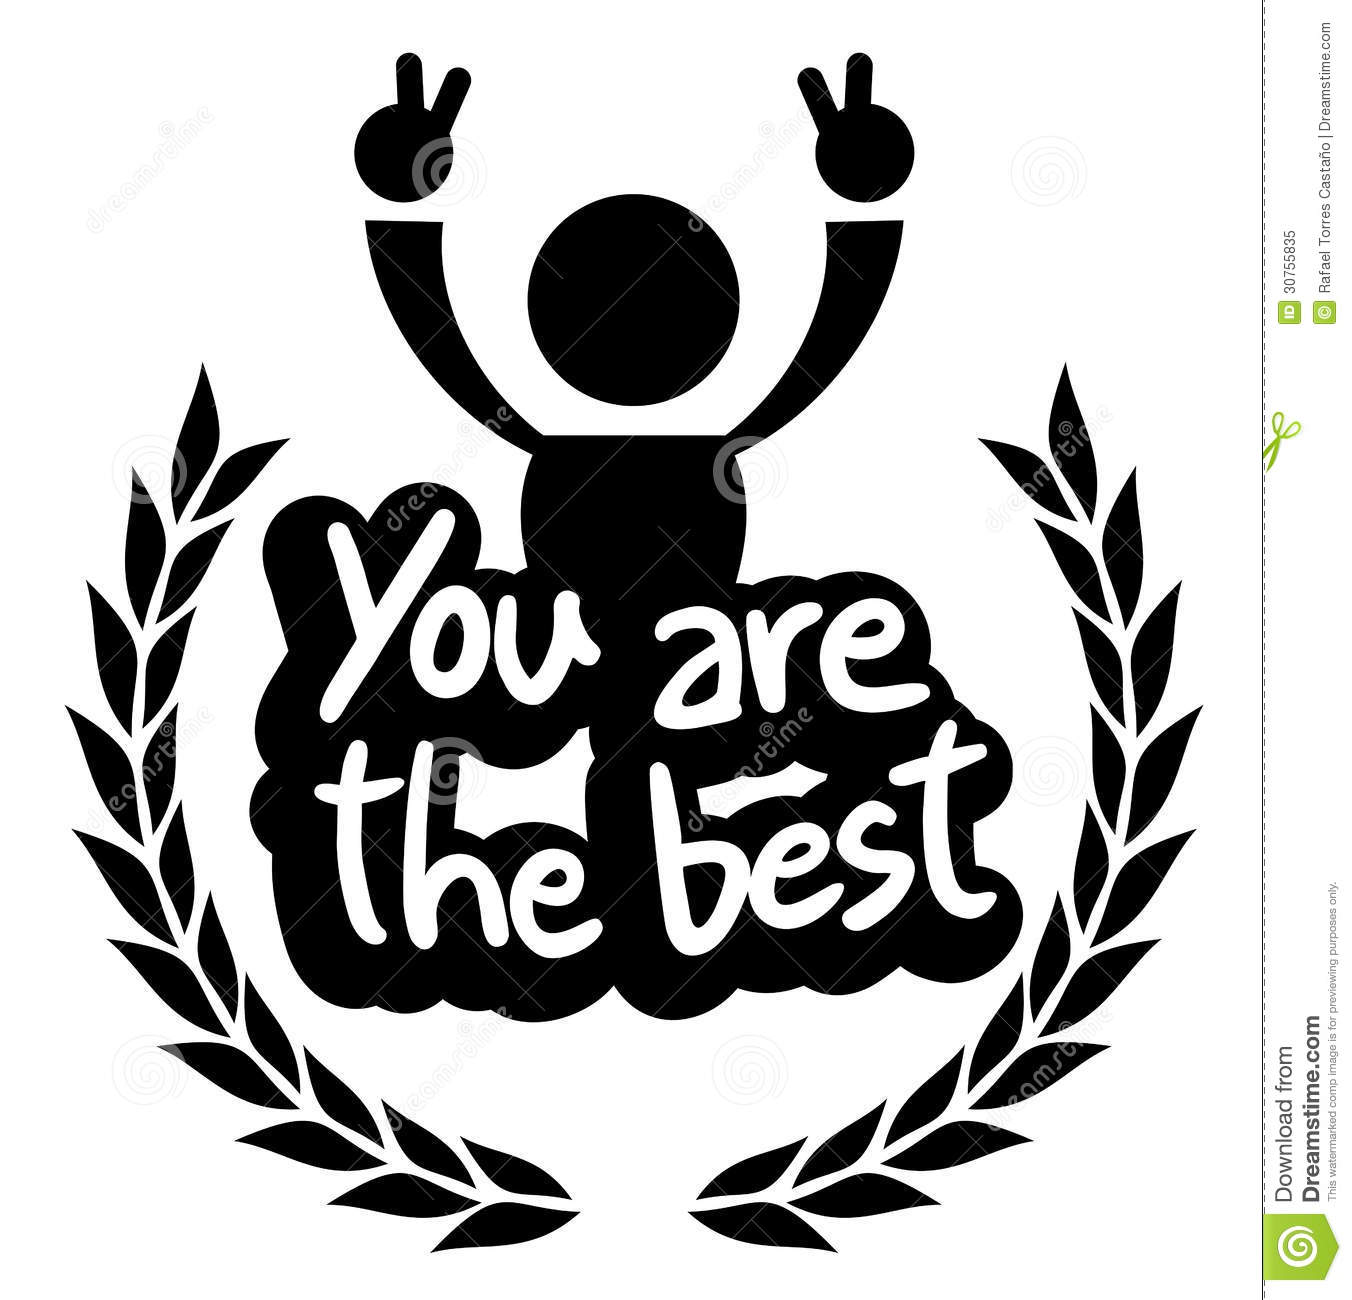 icon you are the best royalty free stock photo image football clipart free black and white football clipart free black and white